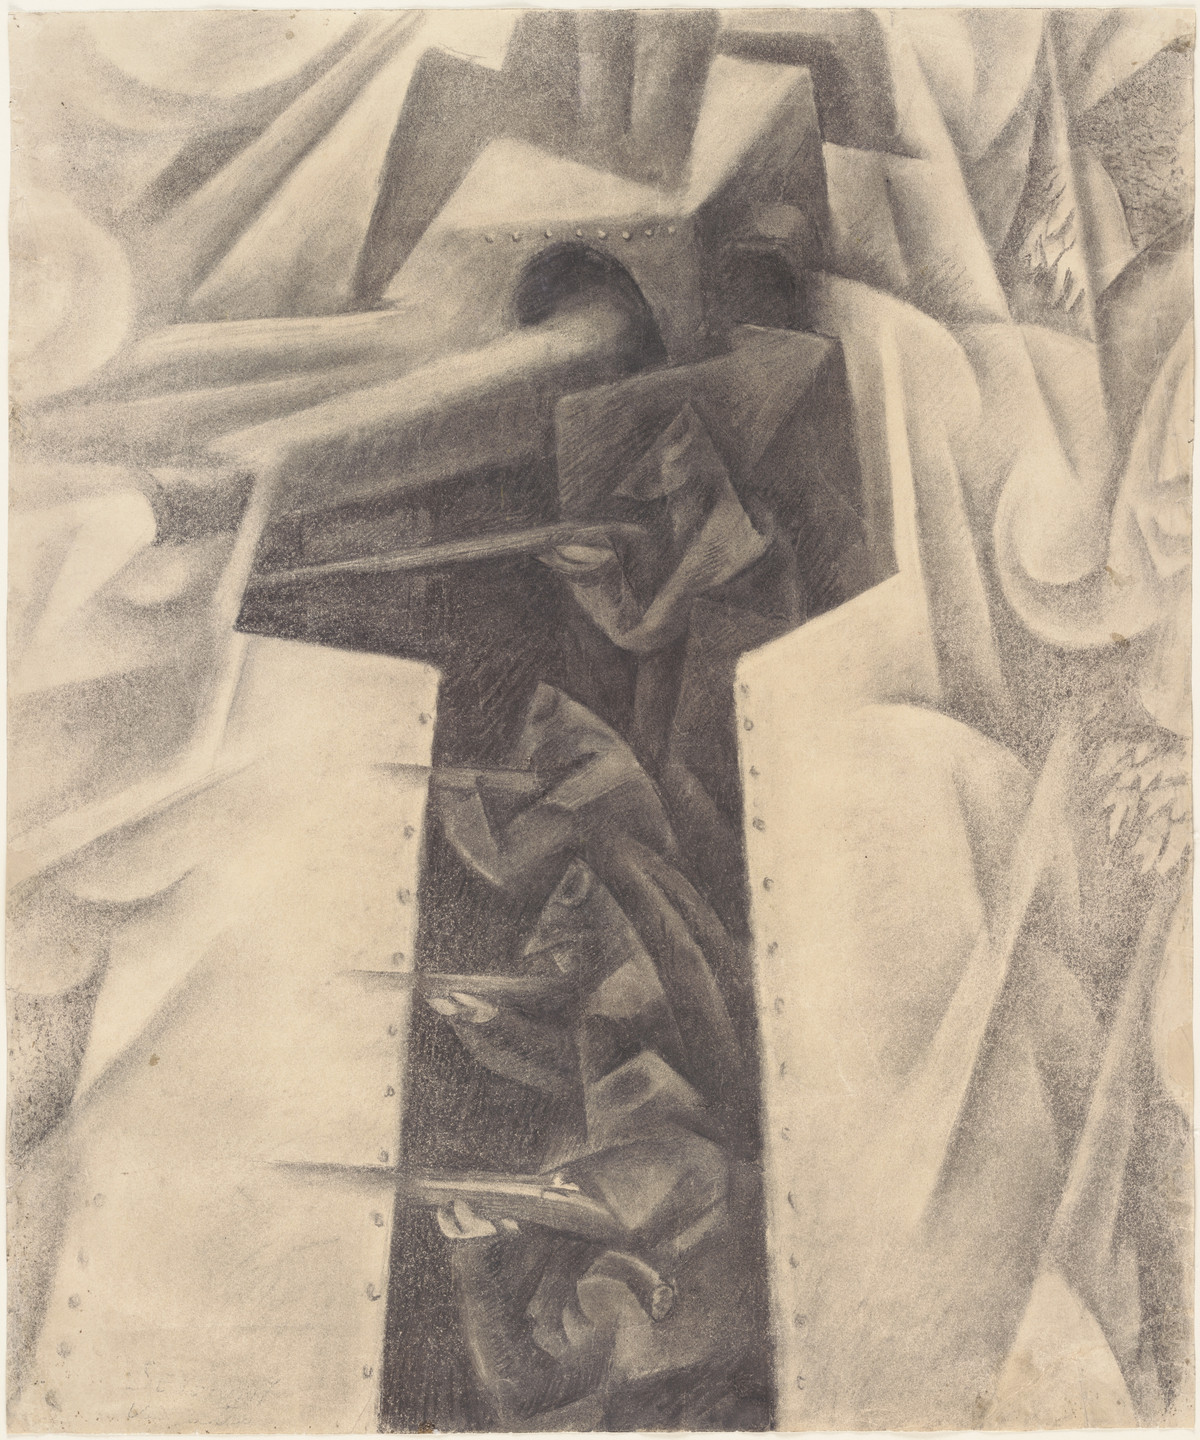 Gino Severini. Armored Train in Action. 1915